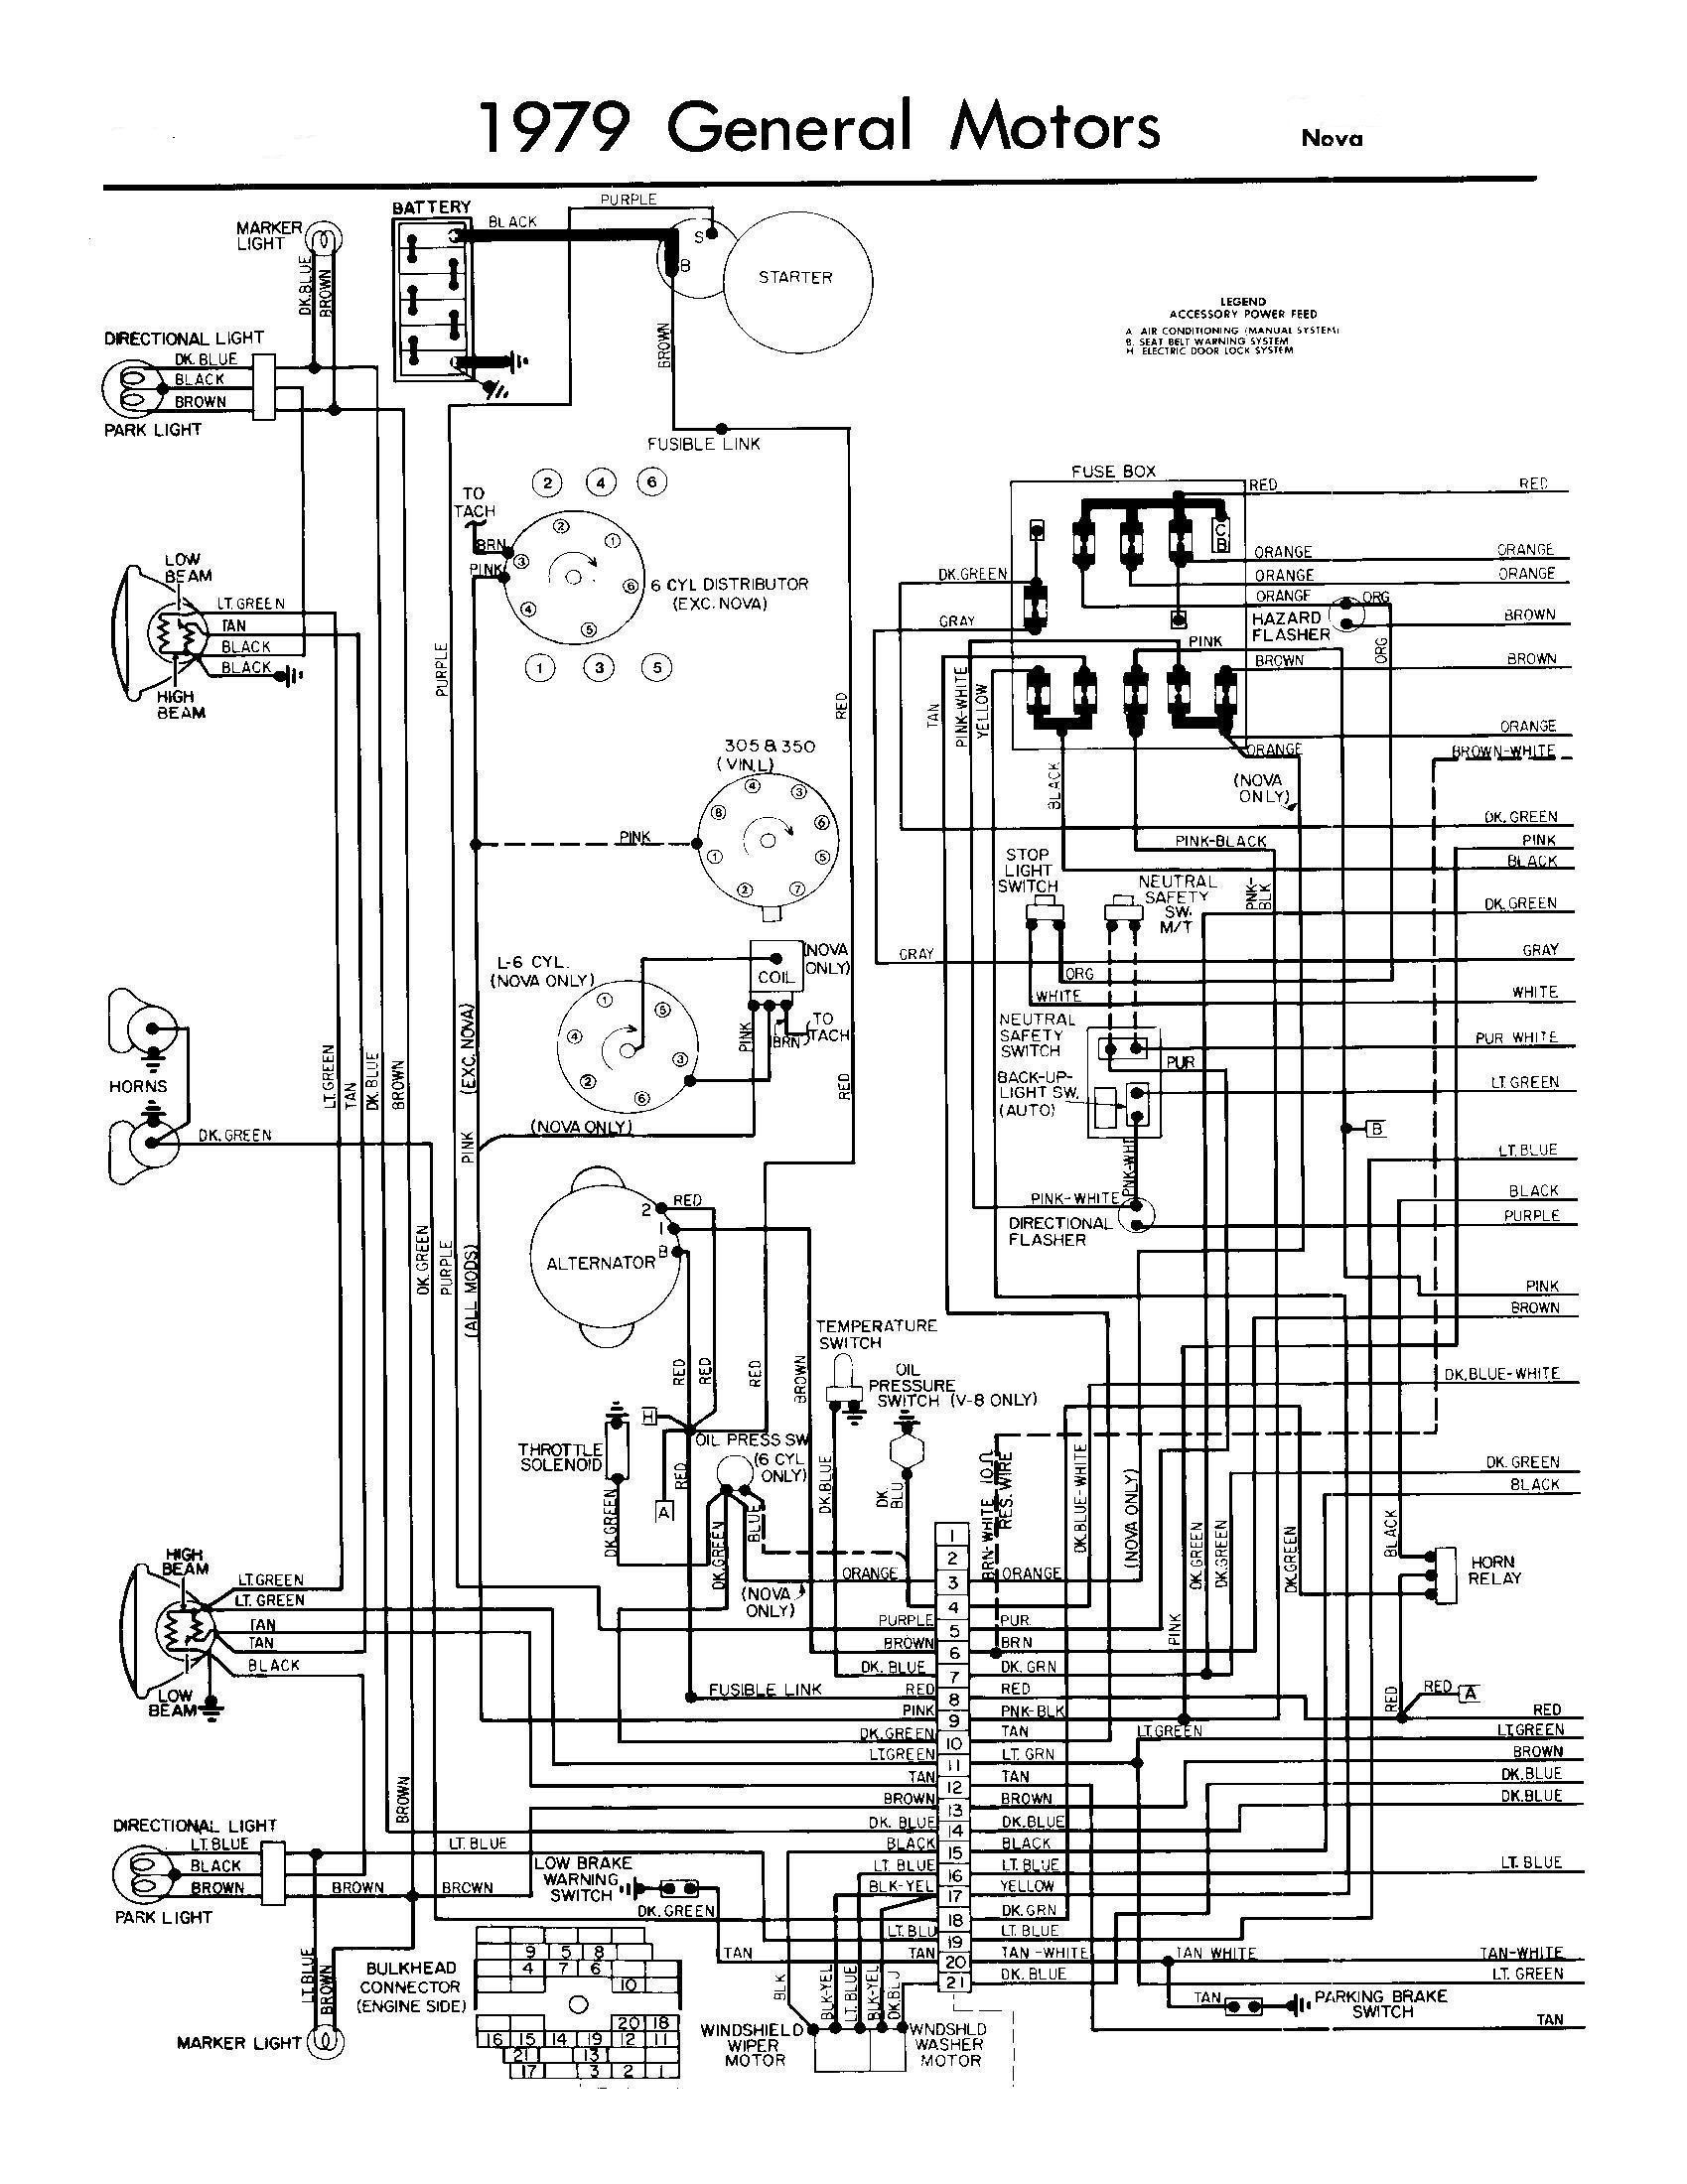 Rear Lighting Schematic Diagram G Models For 1979 Gmc Light Duty ...